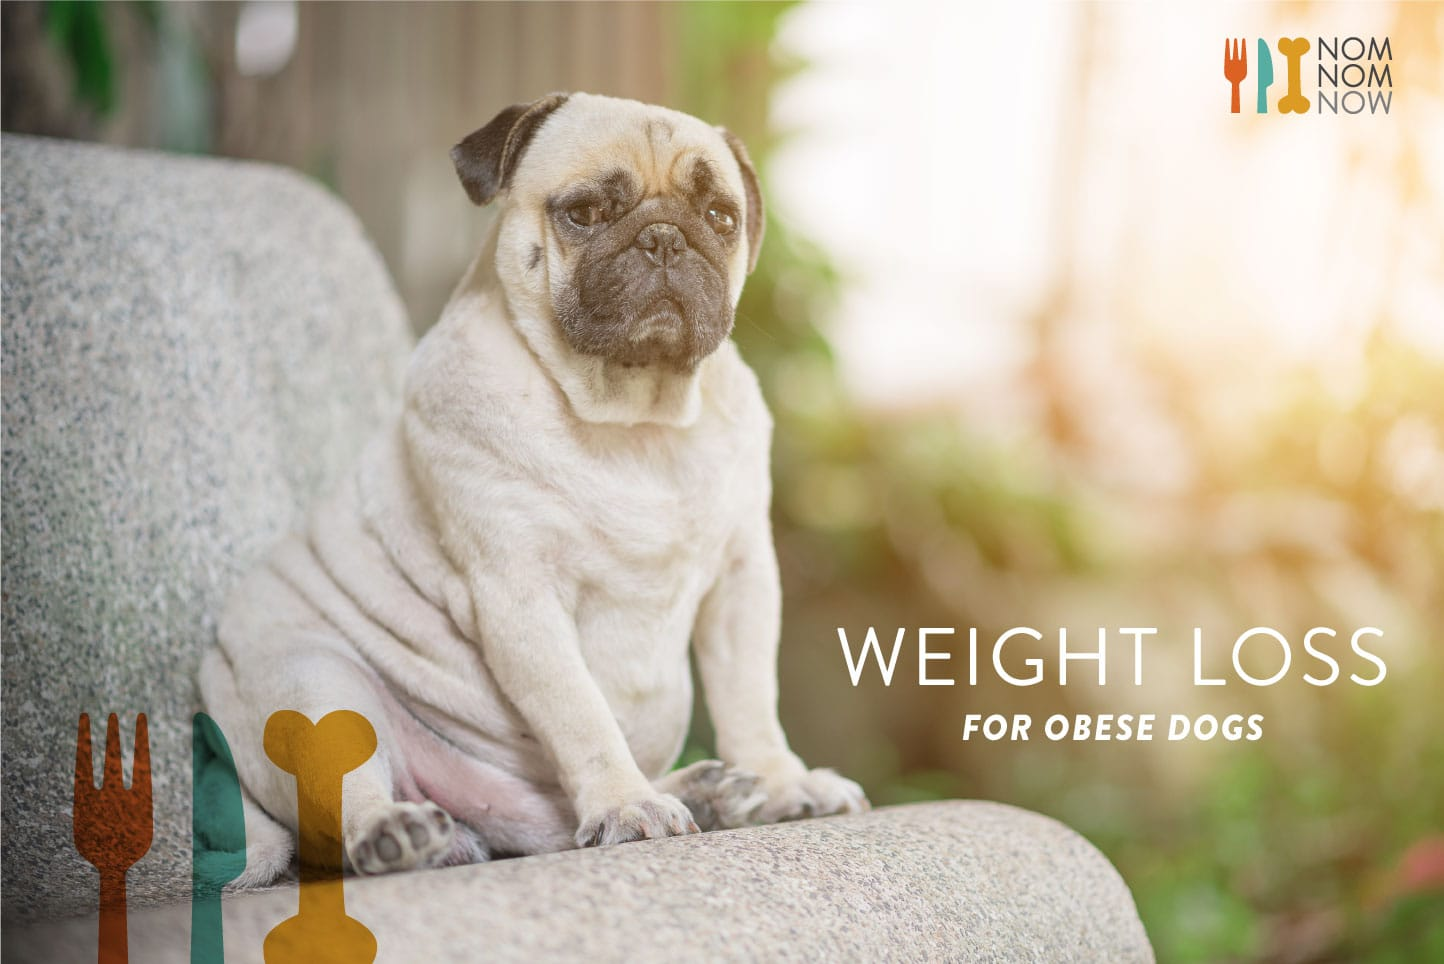 Dogs rapid weight loss causes